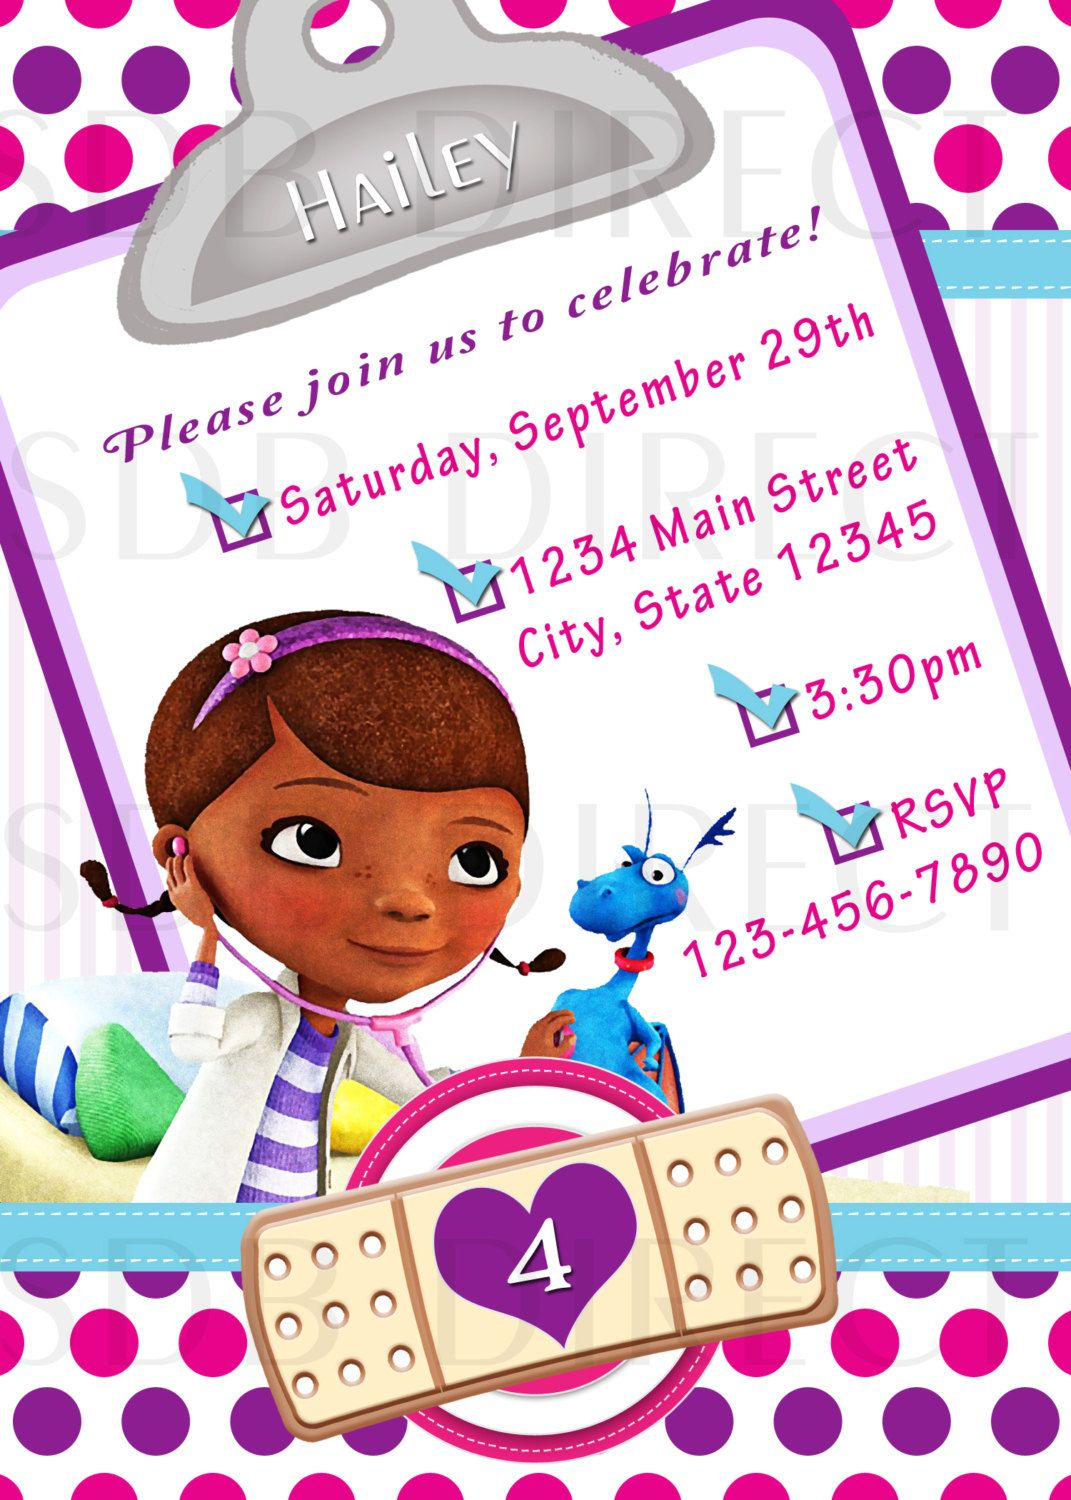 Cute doc mcstuffins digital birthday party invitations 999 via cute doc mcstuffins digital birthday party invitations 999 via etsy monicamarmolfo Image collections